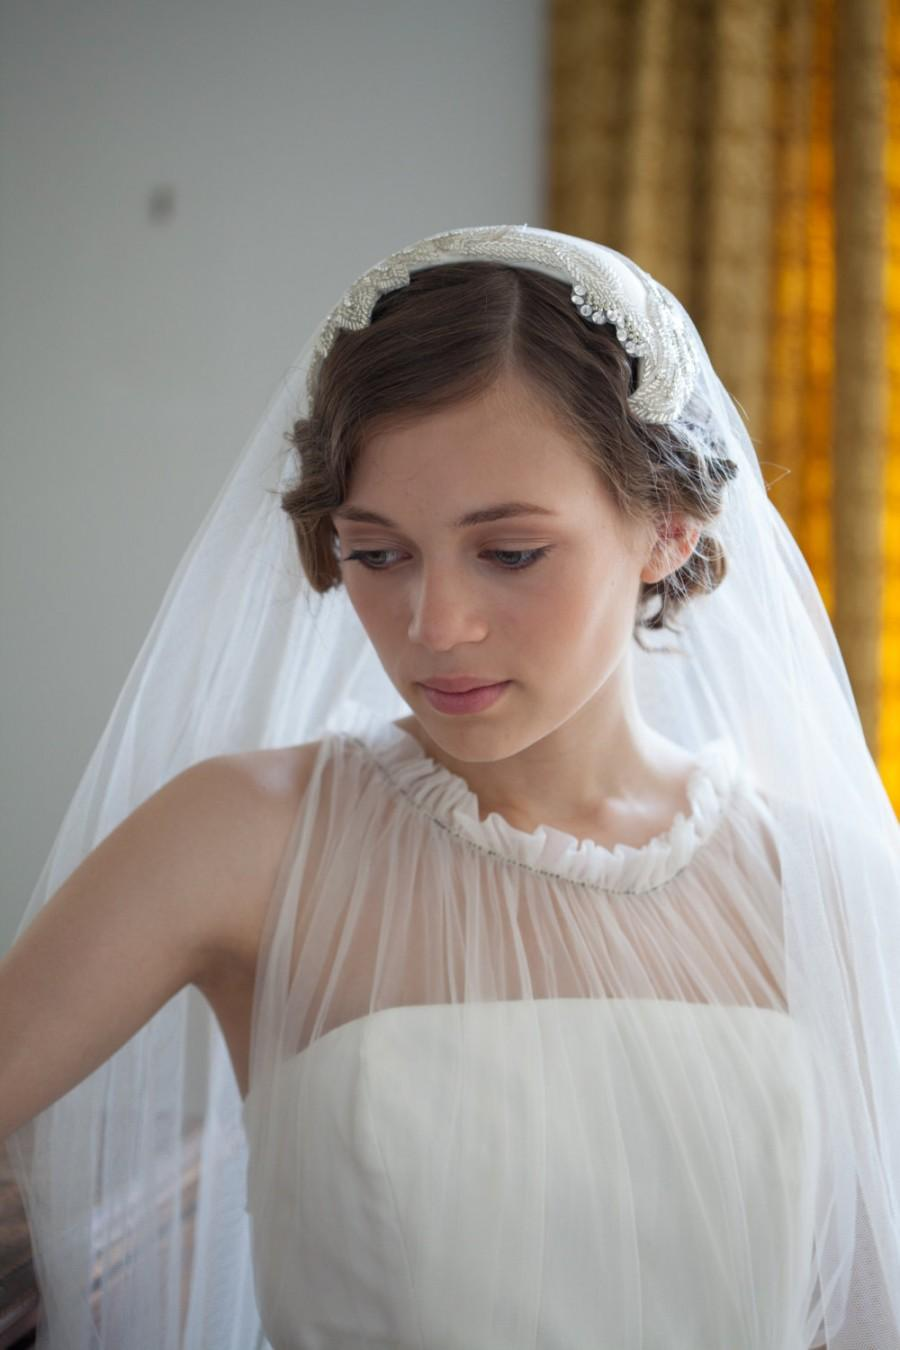 Bräutigam Vintage Look Wedding Headpiece And Veil Vintage Style Bridal Headpiece And